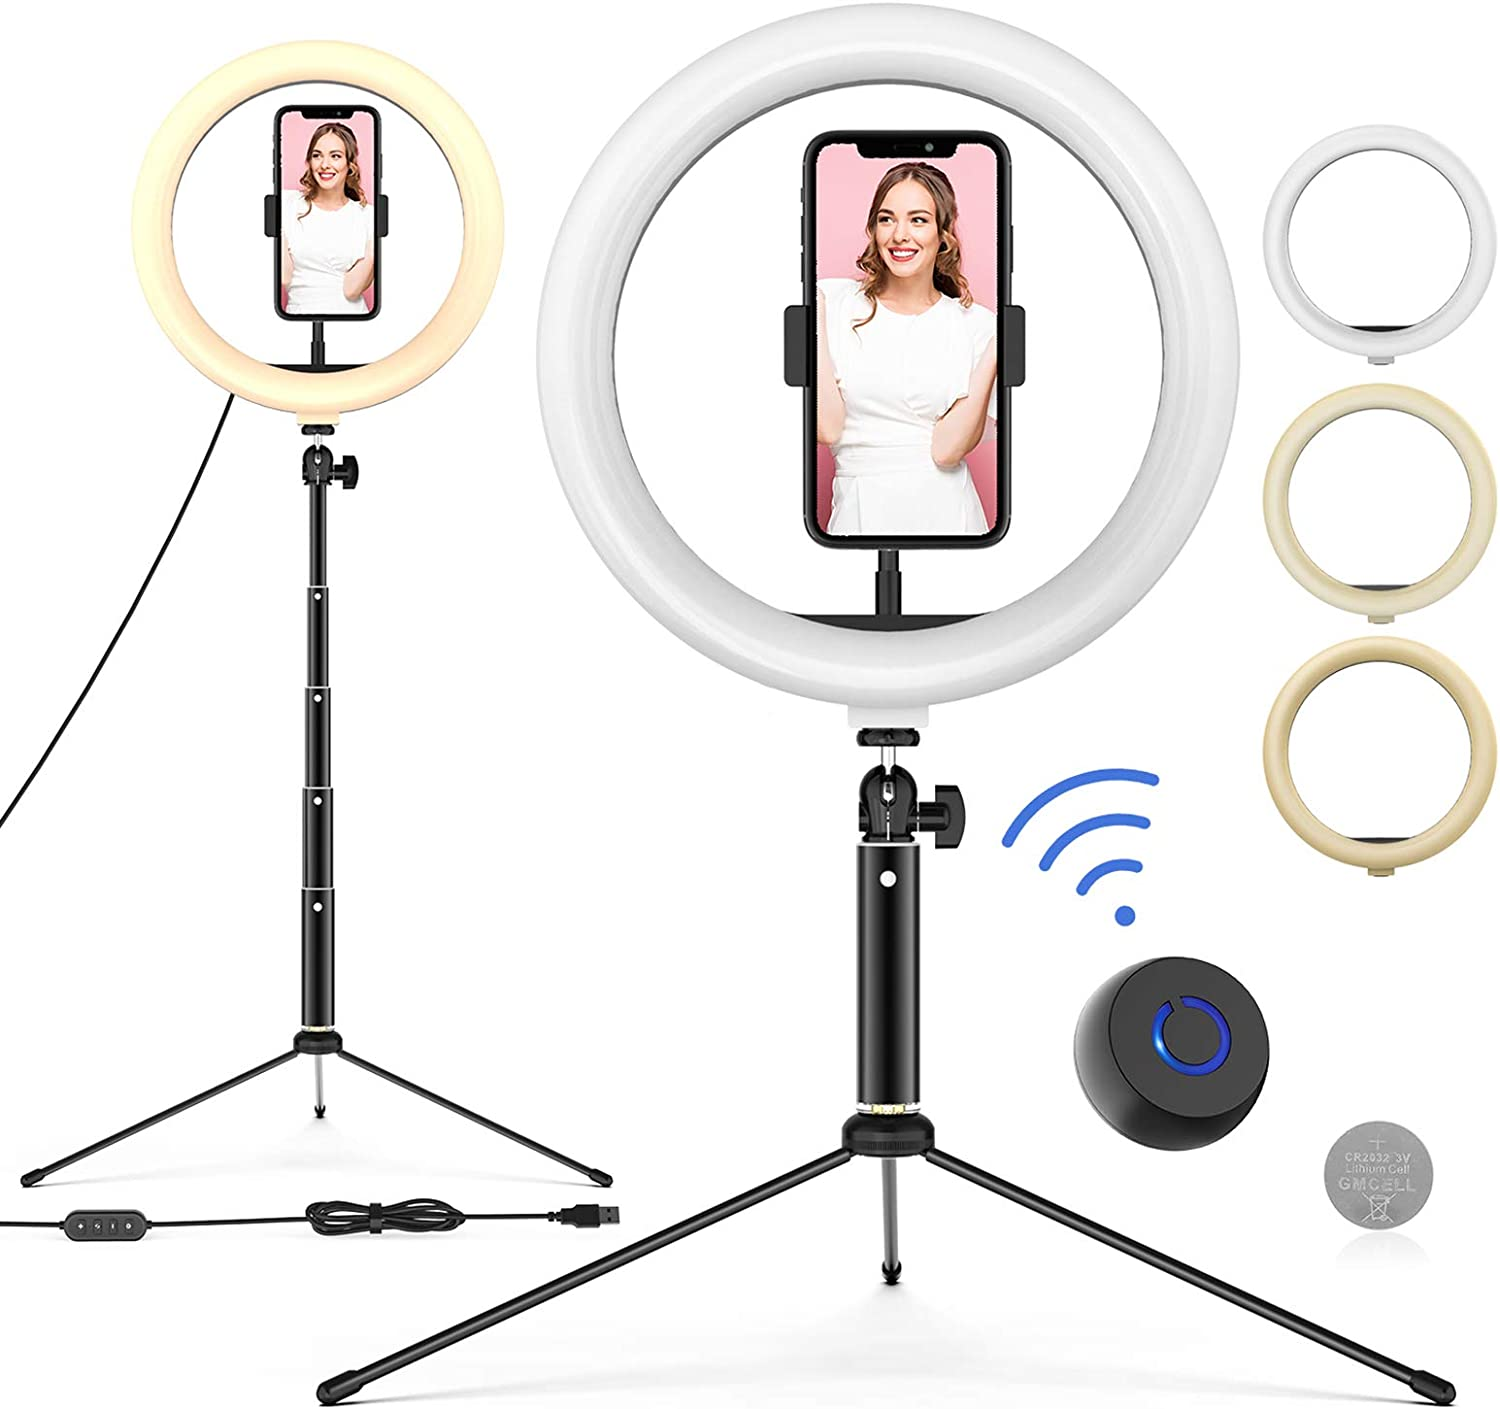 """10"""" LED Ring Light with Tripod Stand Adjustable & Phone Holder, Bluetooth Remote Shutter for Makeup/Live Stream/YouTube Video/Photography, Compatible with iOS/Android - WONEW ZJ02"""